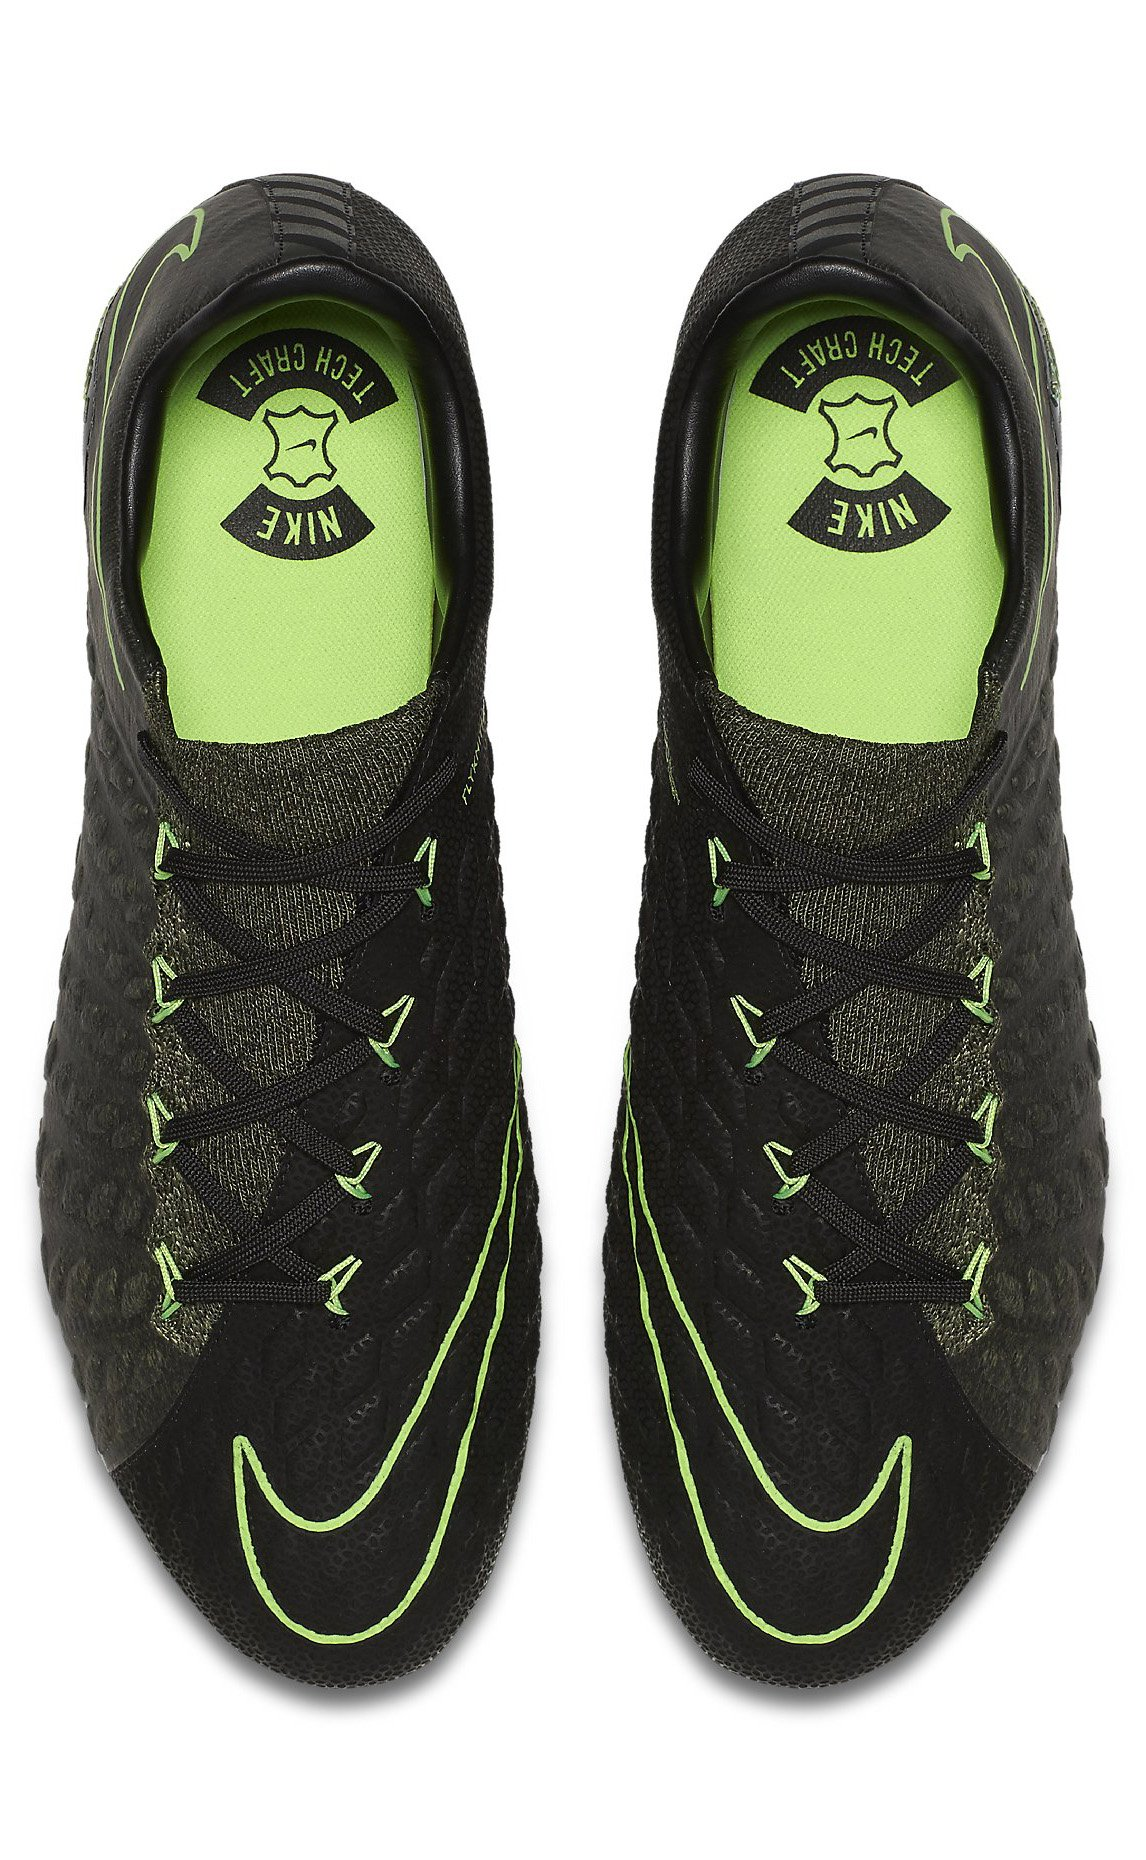 Nike Hypervenom Phantom III DF Tech Craft FG - Black/Electric Green/Sequoia